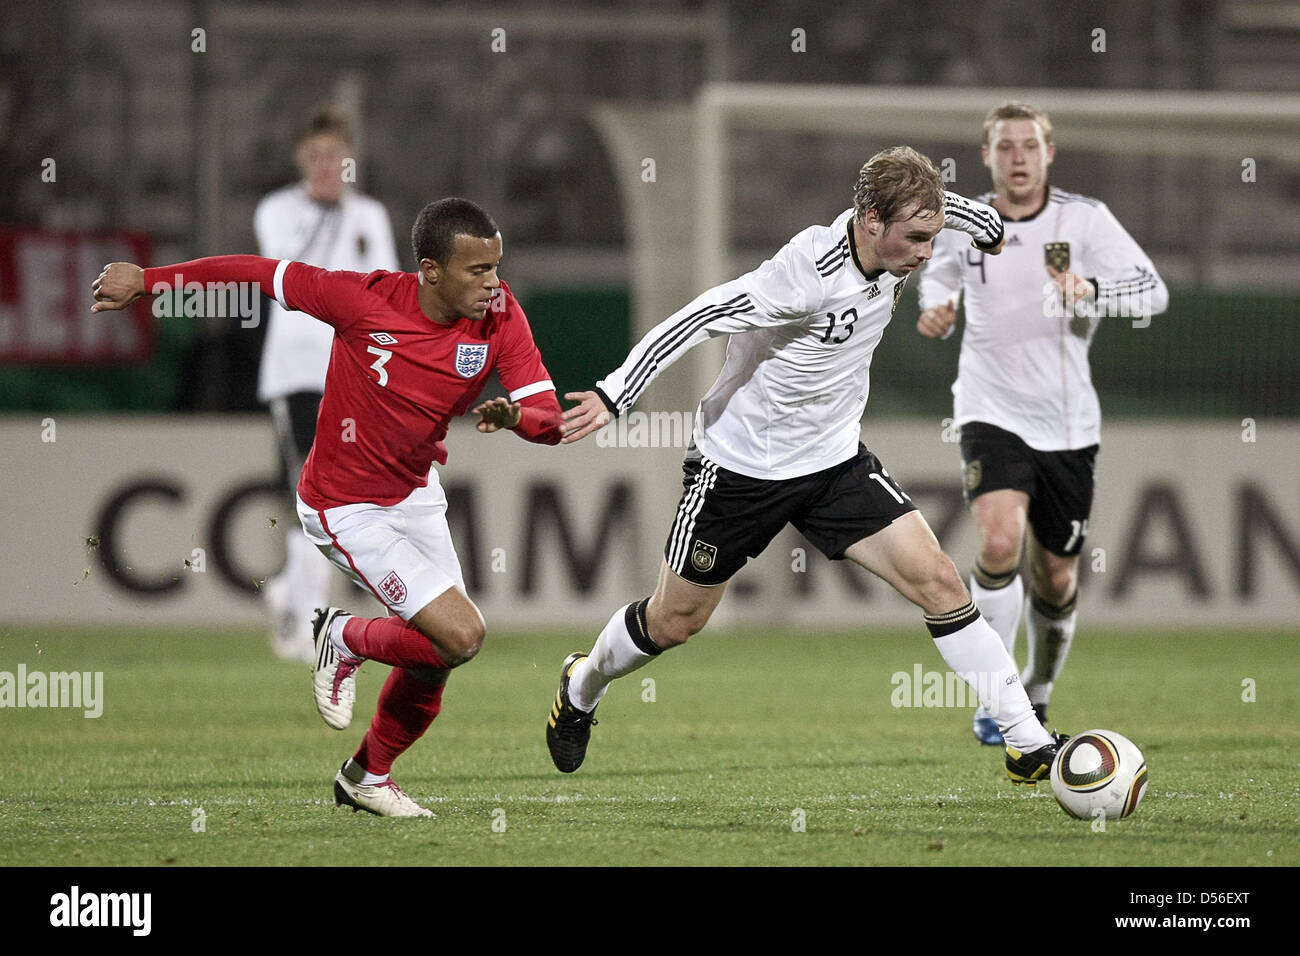 Germany's Maximilian Beister (R)and England's Ryan Betrend (L)vie for the ball during Under21 - Stock Image